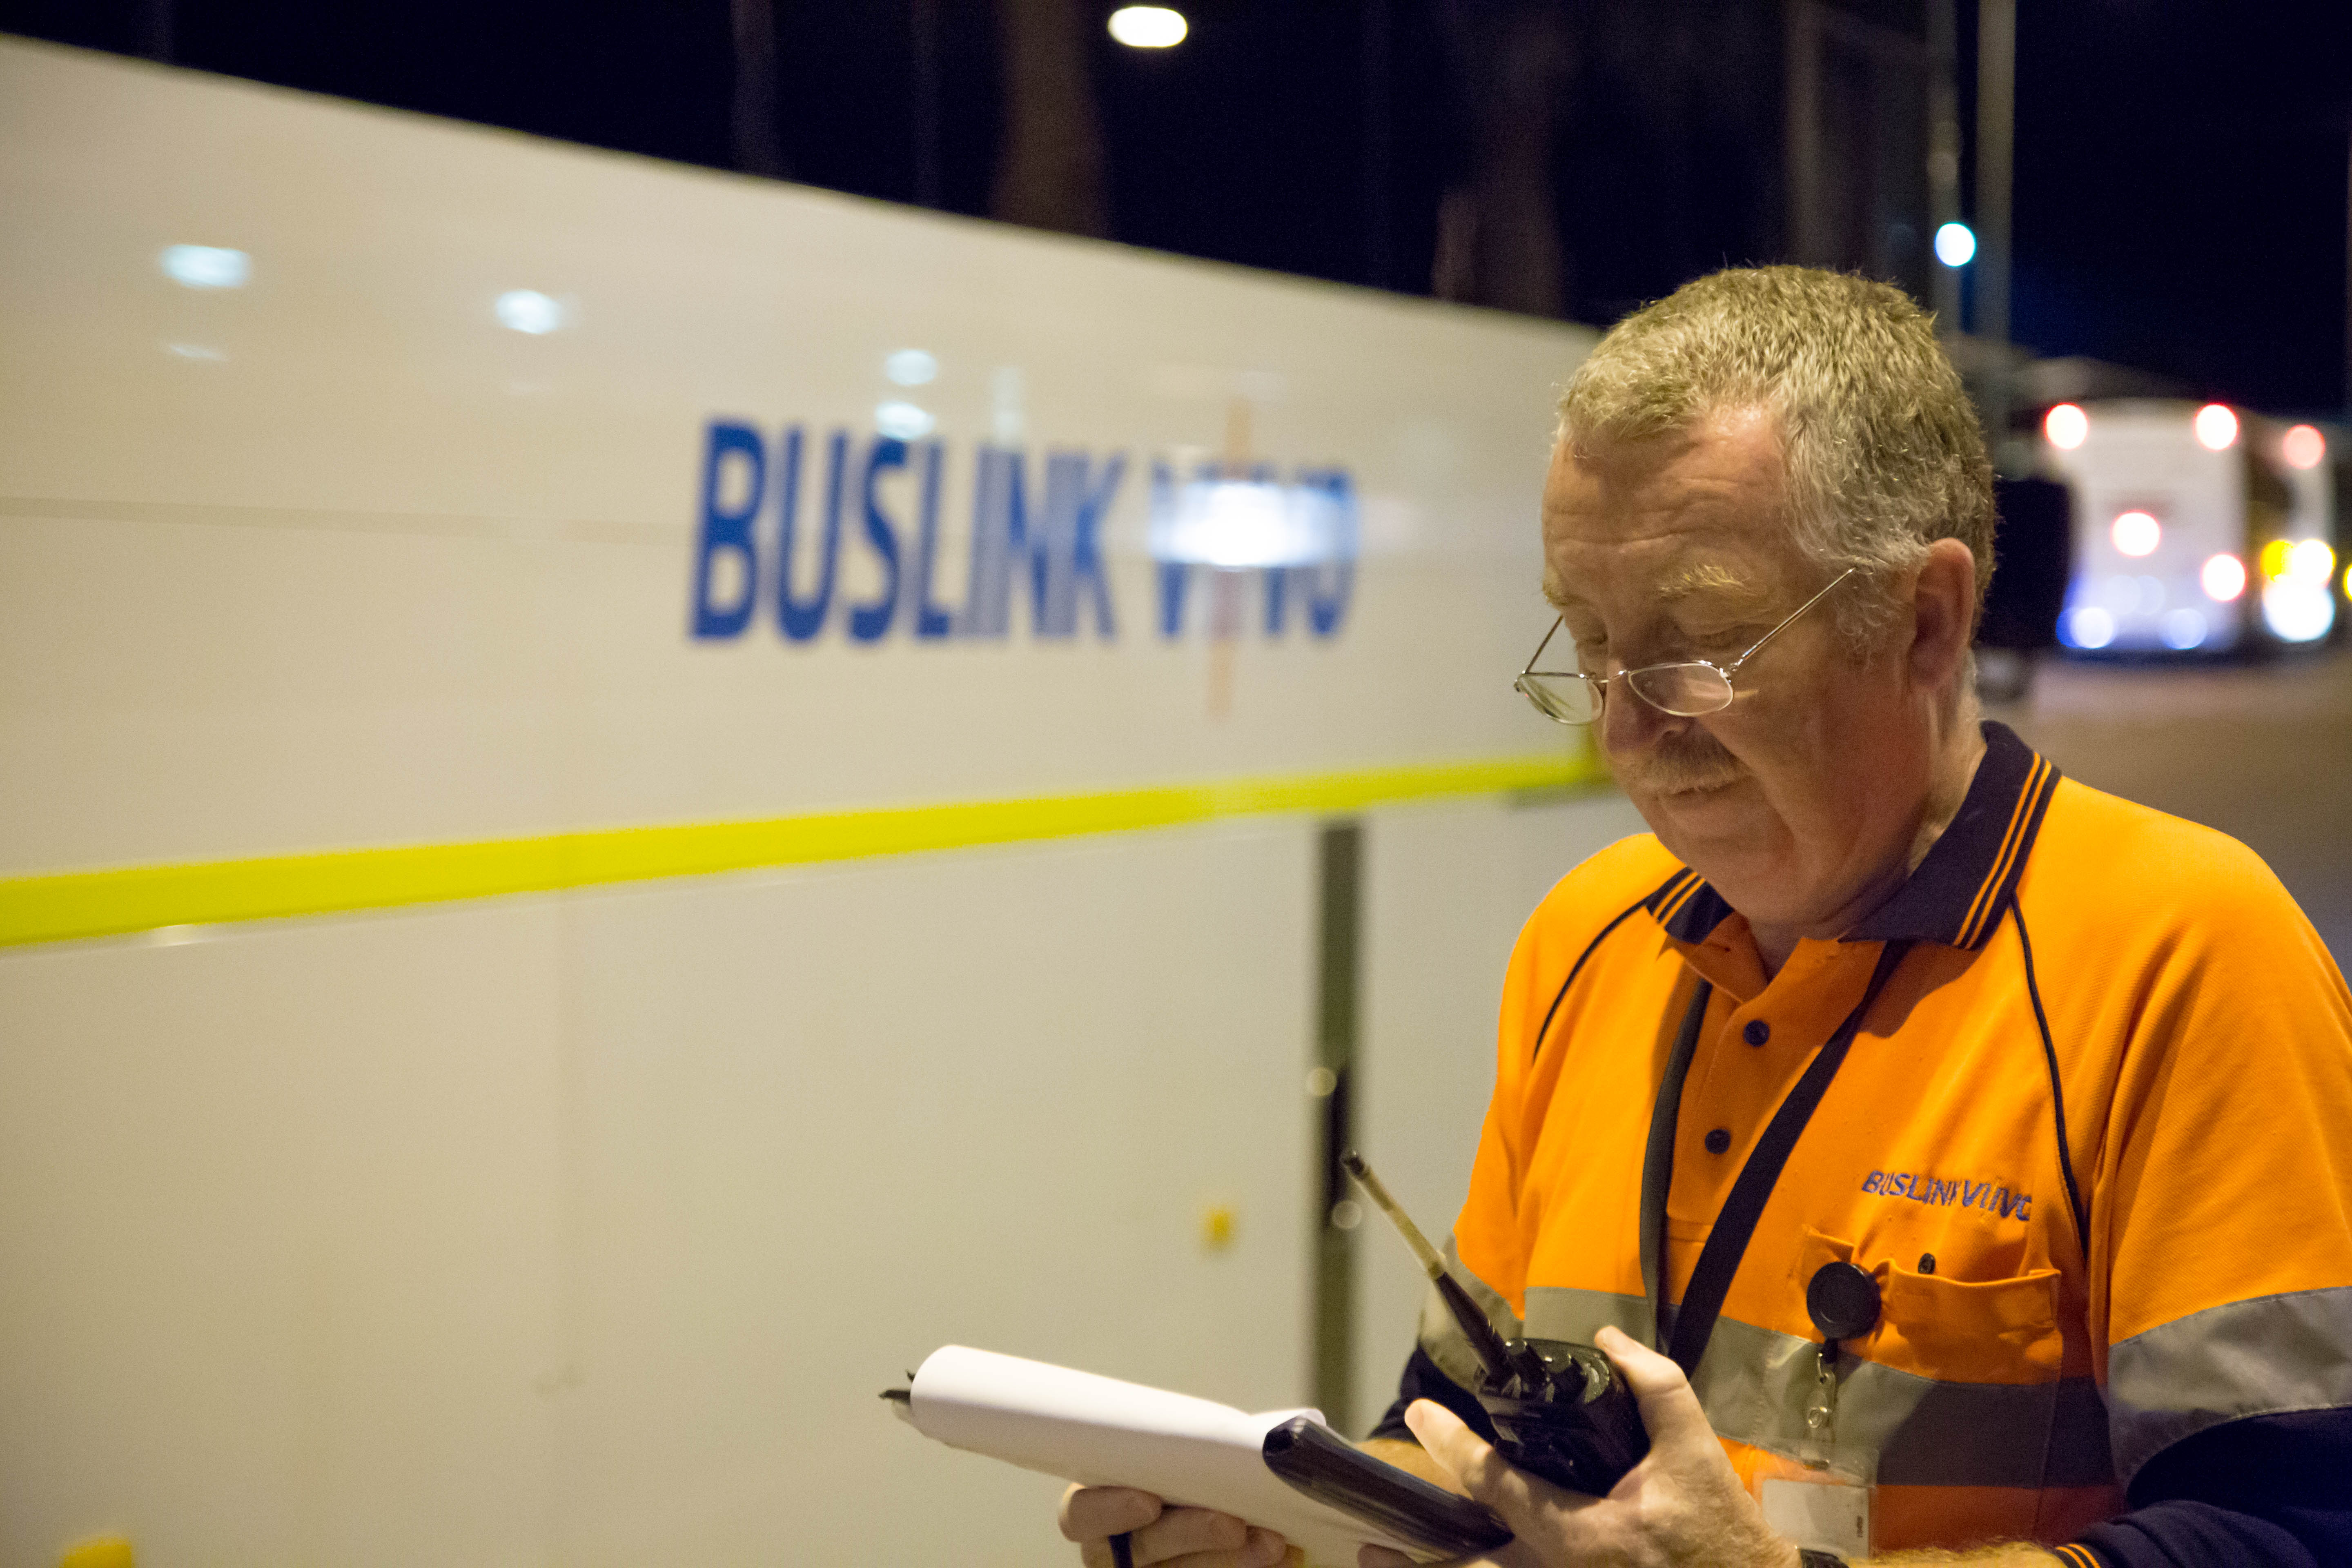 Buslink Vivo, employee communication